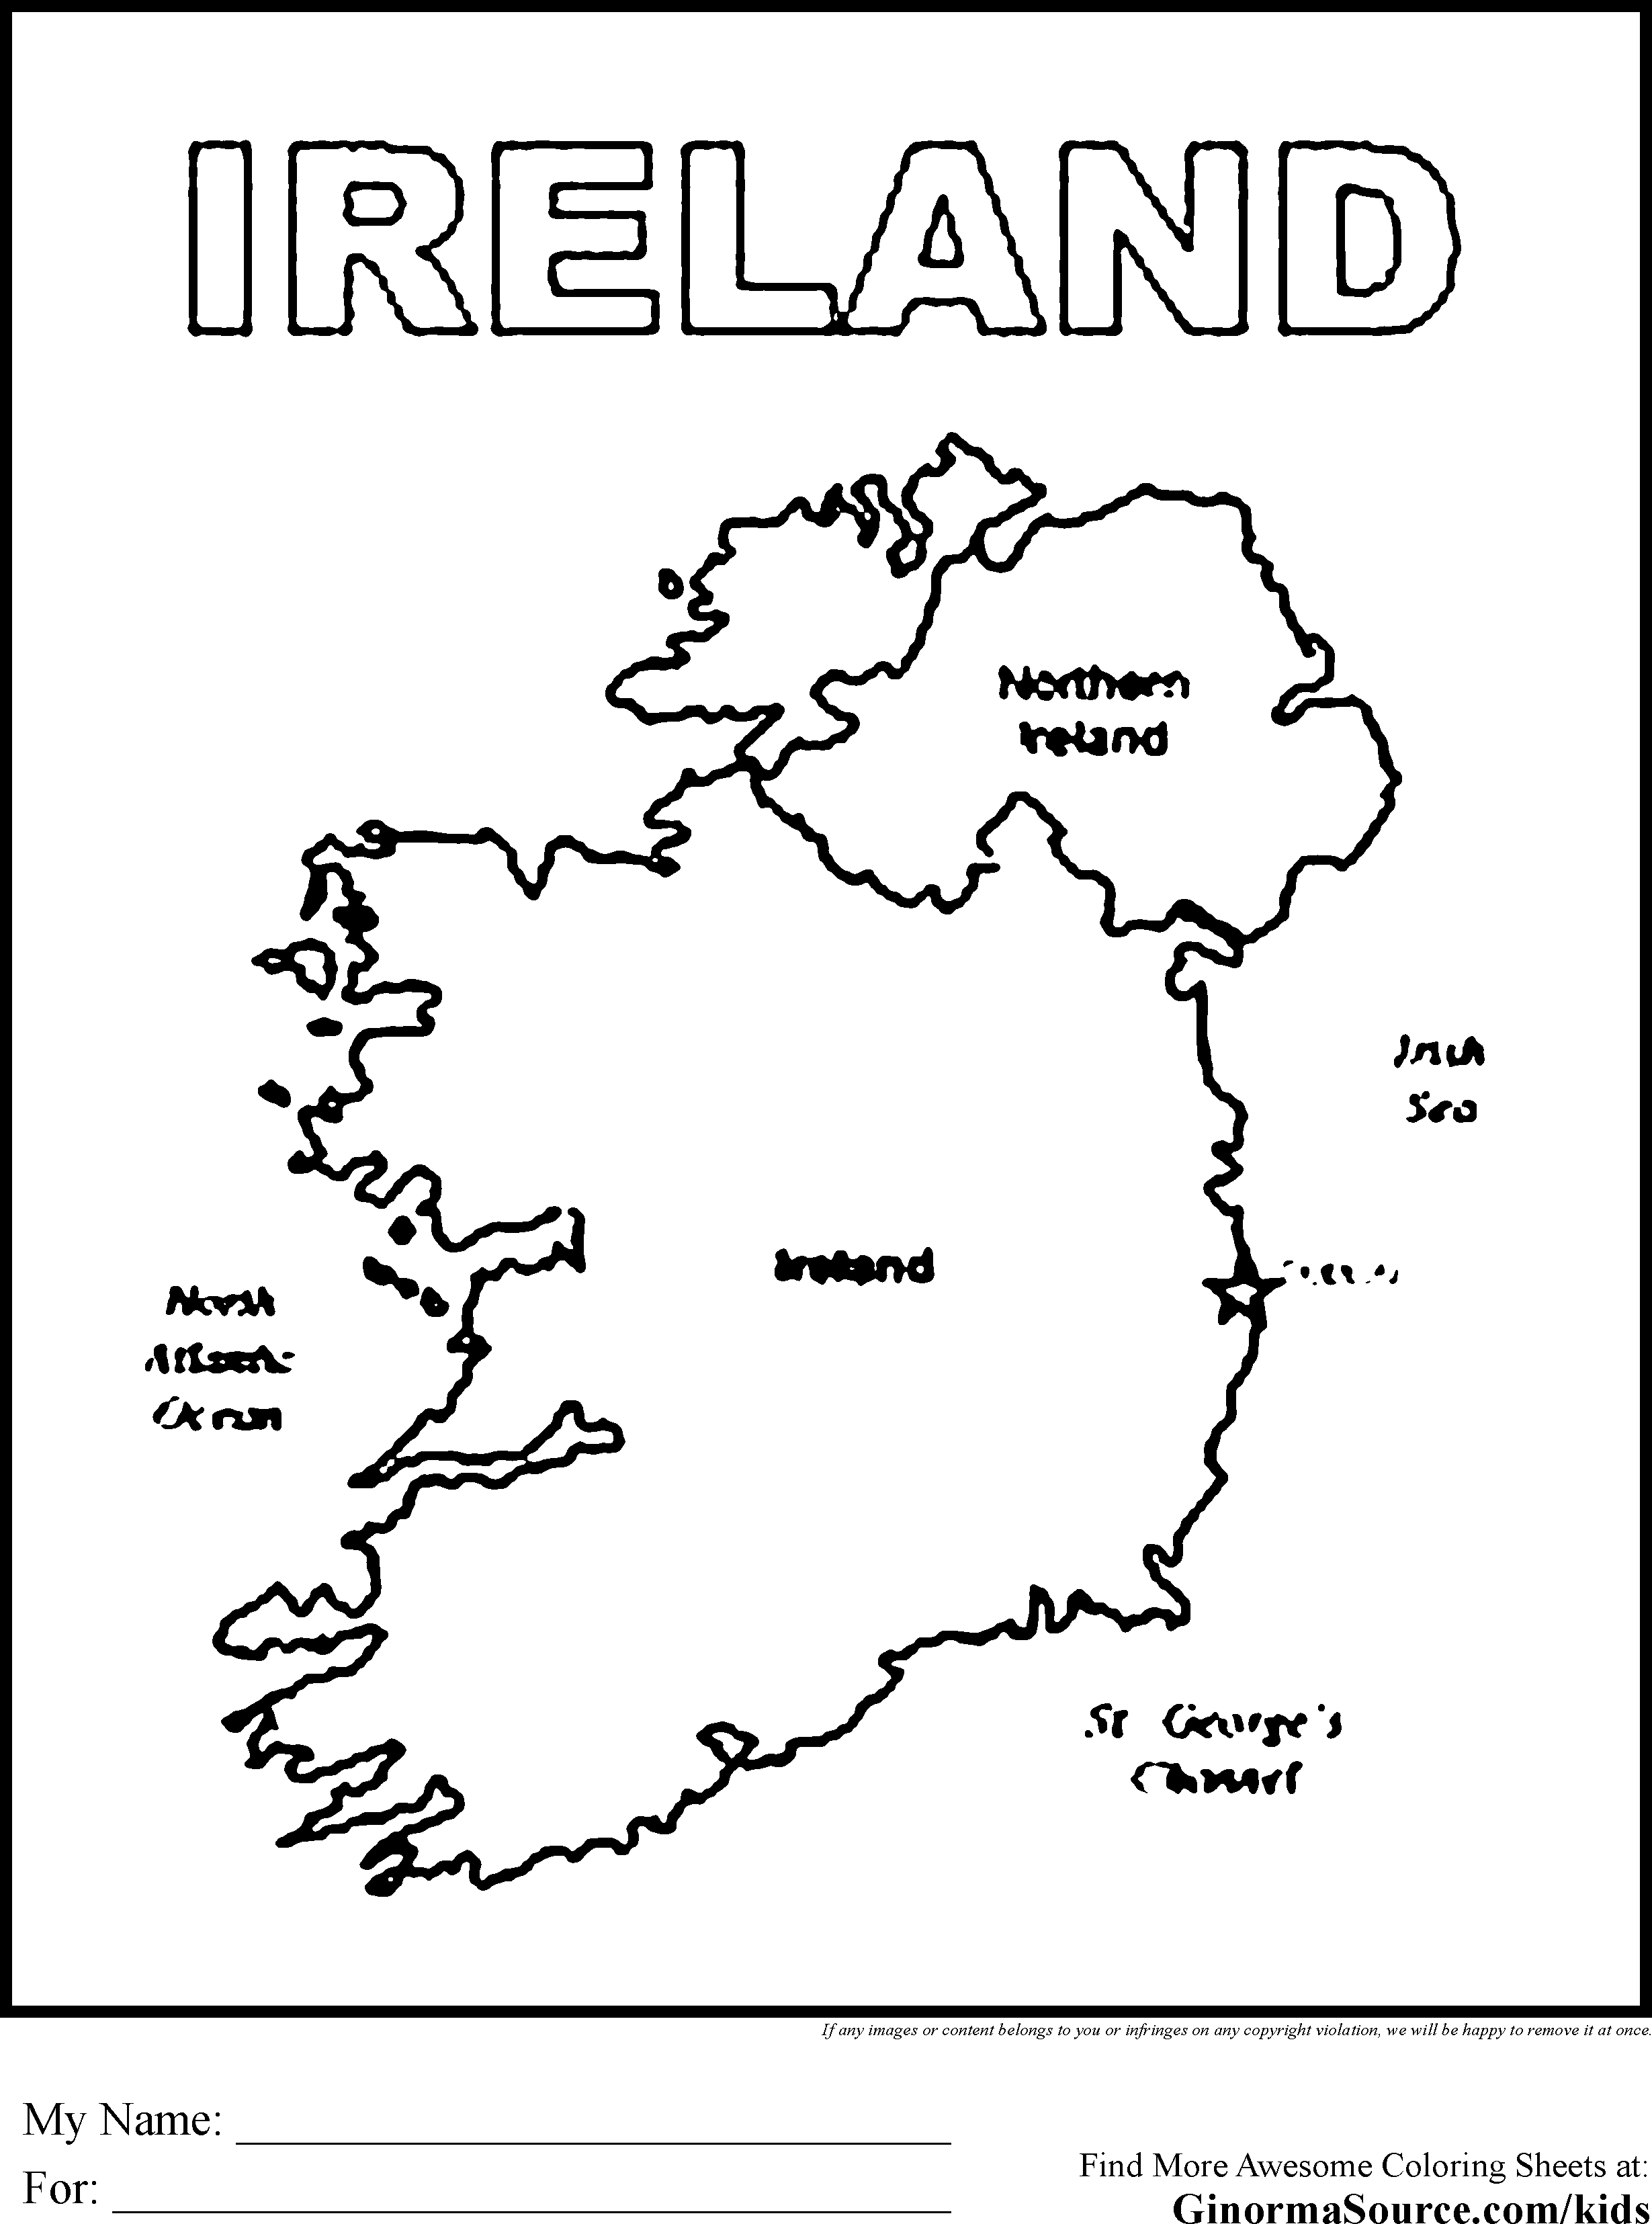 Ireland Coloring Pages Ireland Pinterest